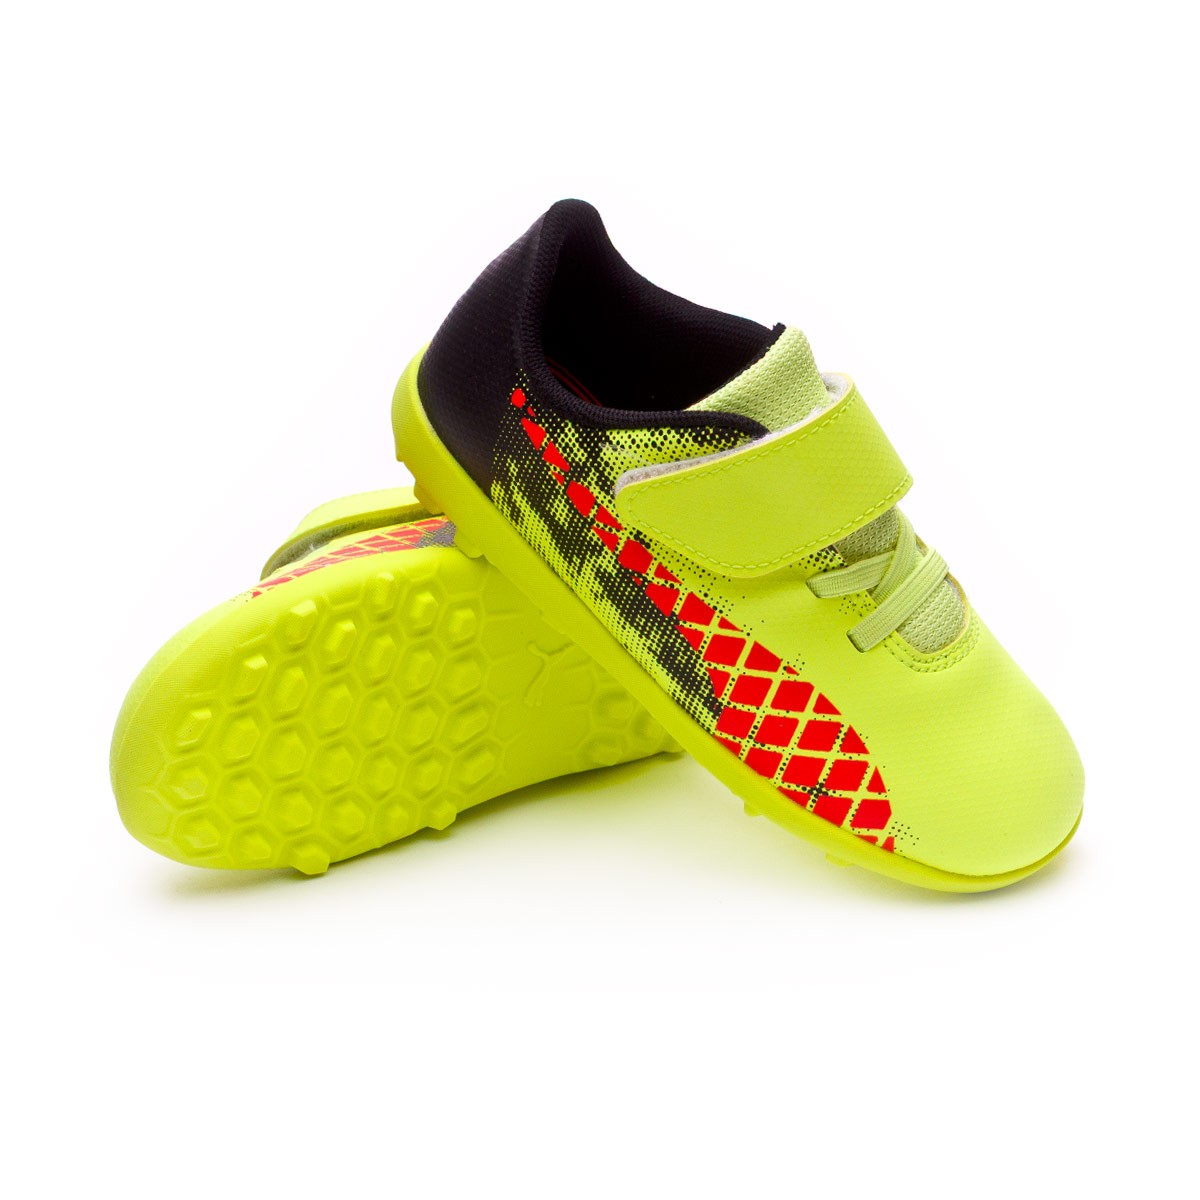 ... Future 18.4 Turf Velcro Fizzy Yellow-Red Blast-Puma Black. CATEGORY.  Football boots 3633f074b1